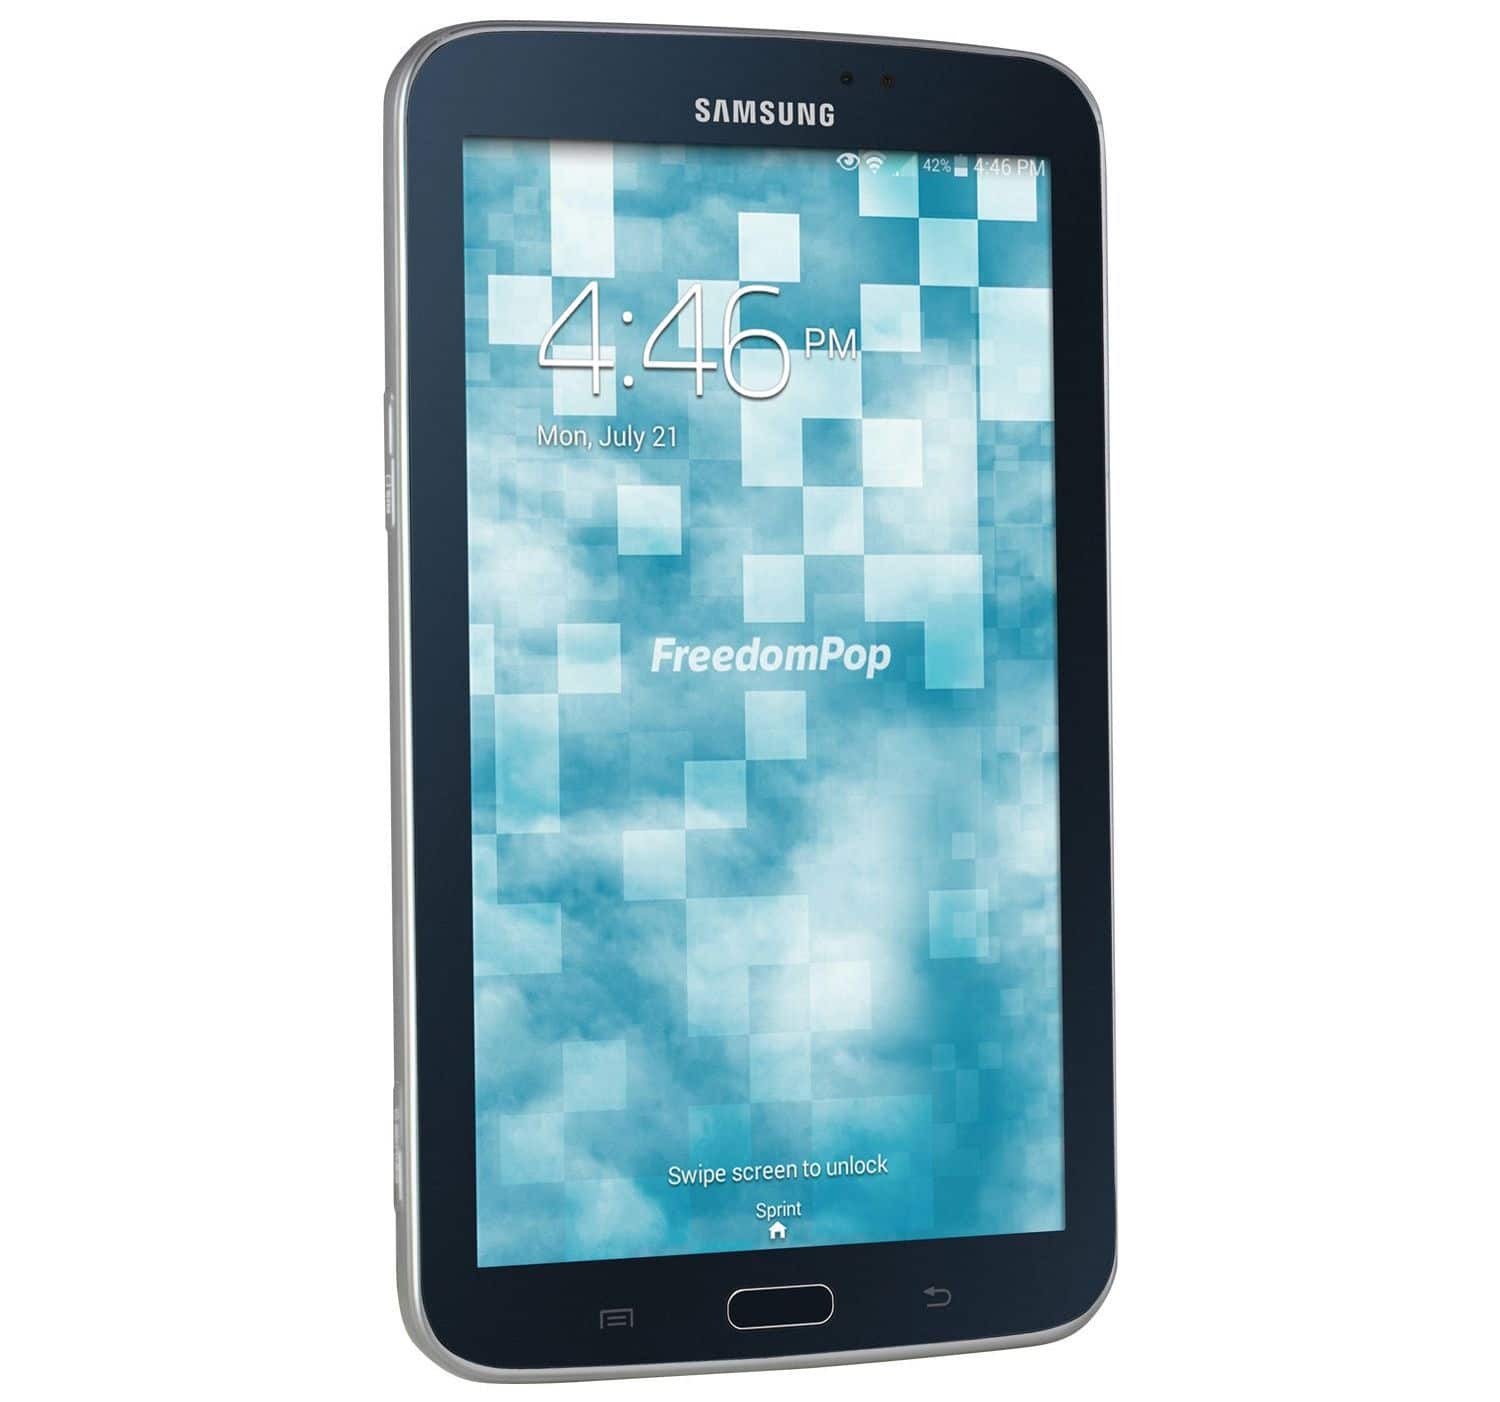 Samsung Galaxy Tab 3 Tablet for $49.99 (certified pre-owned) @Freedompop